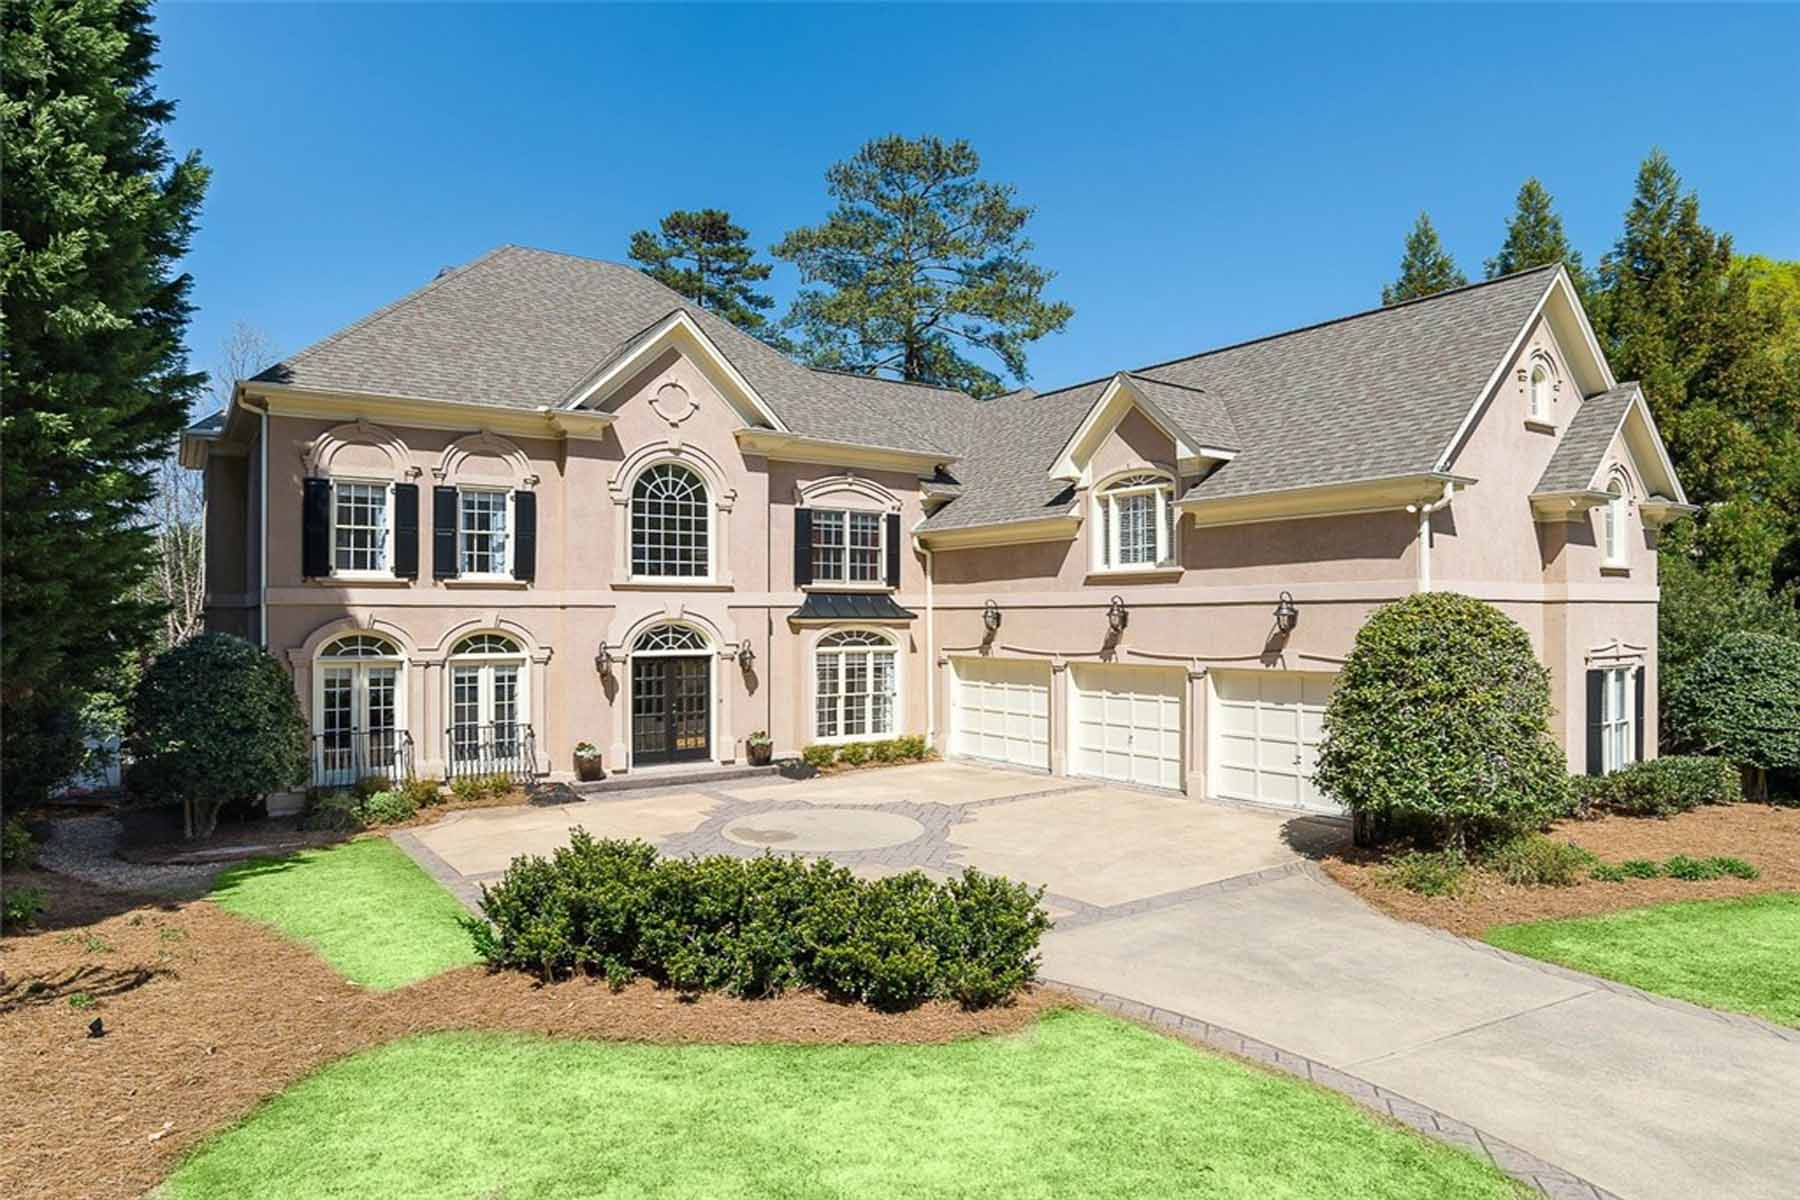 Single Family Home for Sale at Dream Home in Highly Sought After Neighborhood 2322 Edgemere Lake Circle Marietta, Georgia, 30062 United States